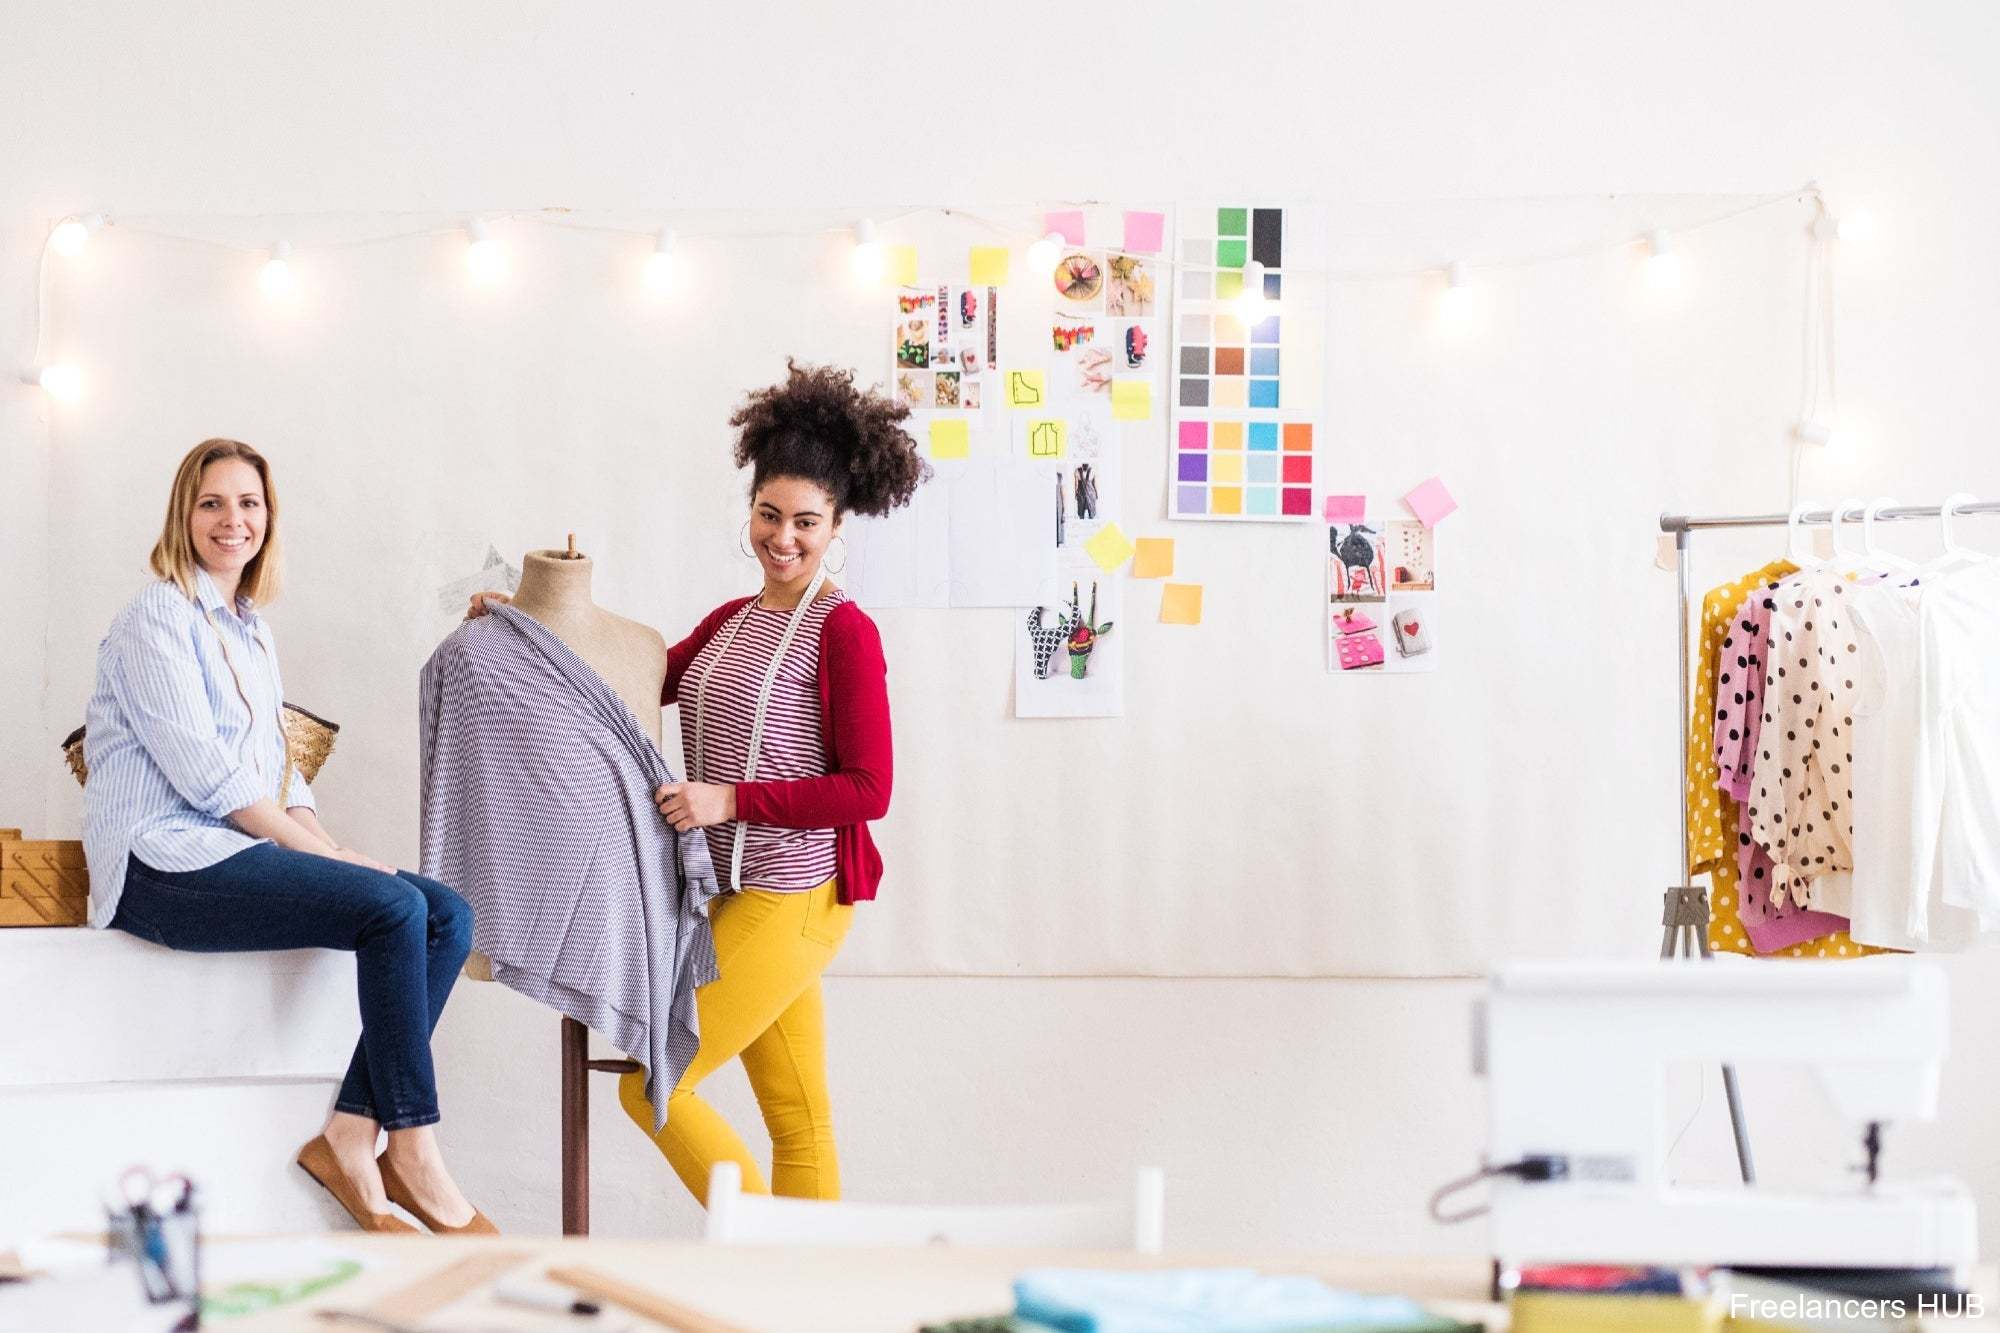 They encourage women to reinvent their businesses with a digital approach